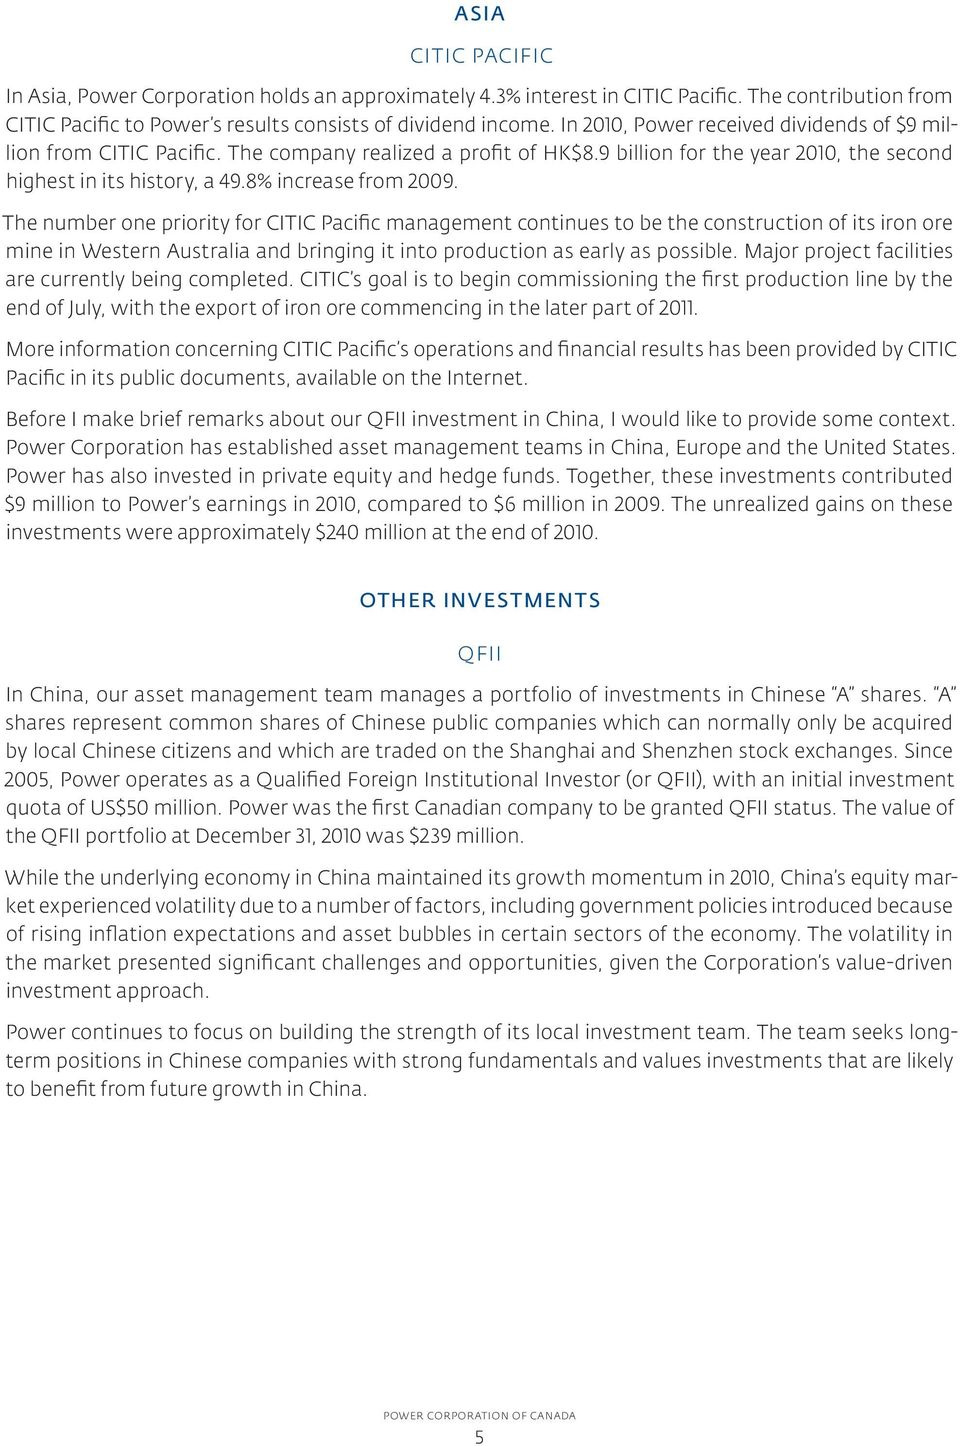 The number one priority for CITIC Pacific management continues to be the construction of its iron ore mine in Western Australia and bringing it into production as early as possible.